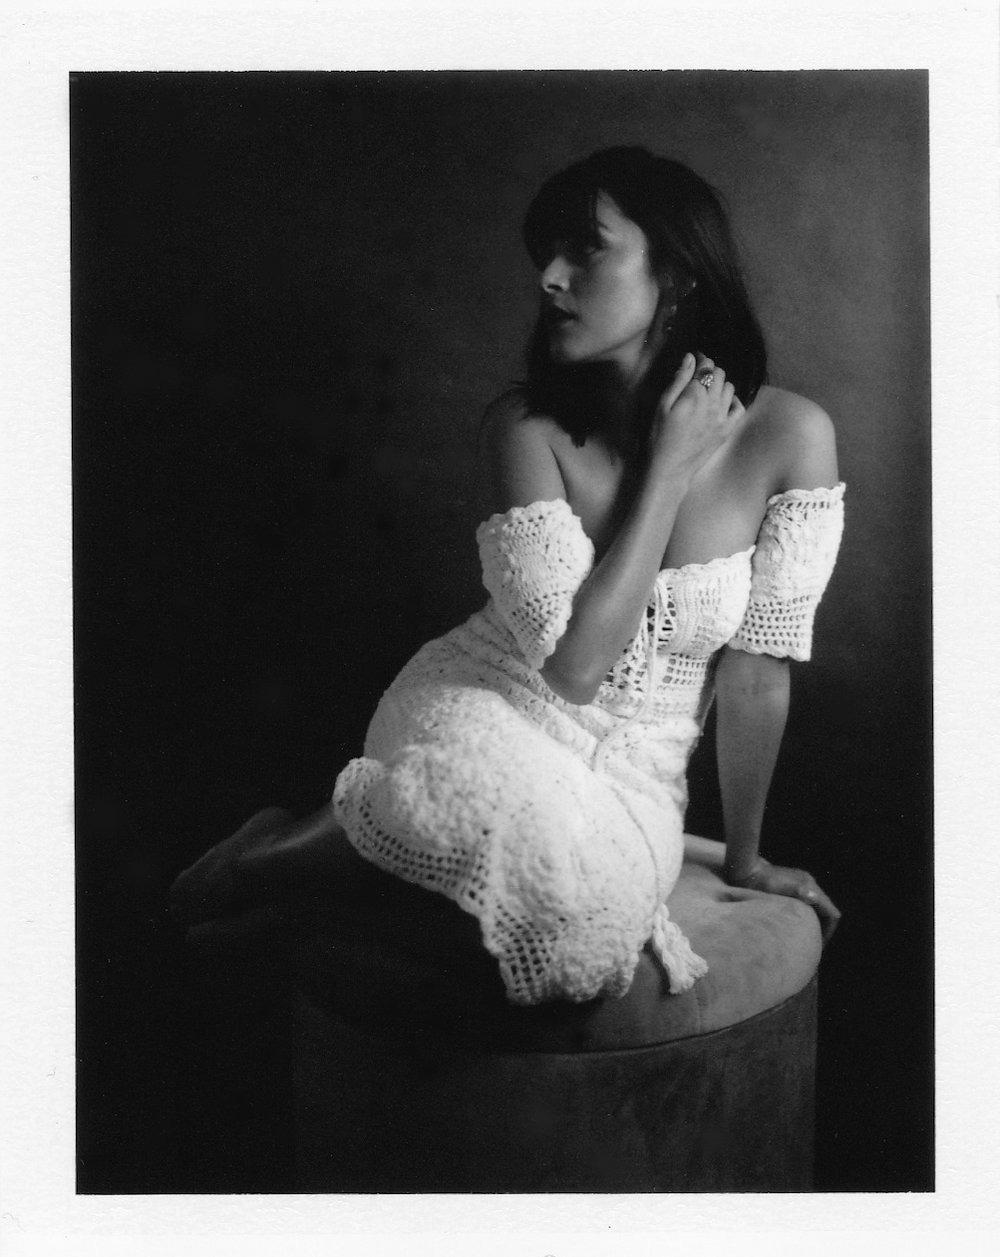 Fujifilm FP-3000b photo Miami Studio Photographer denice lachapelle photography.